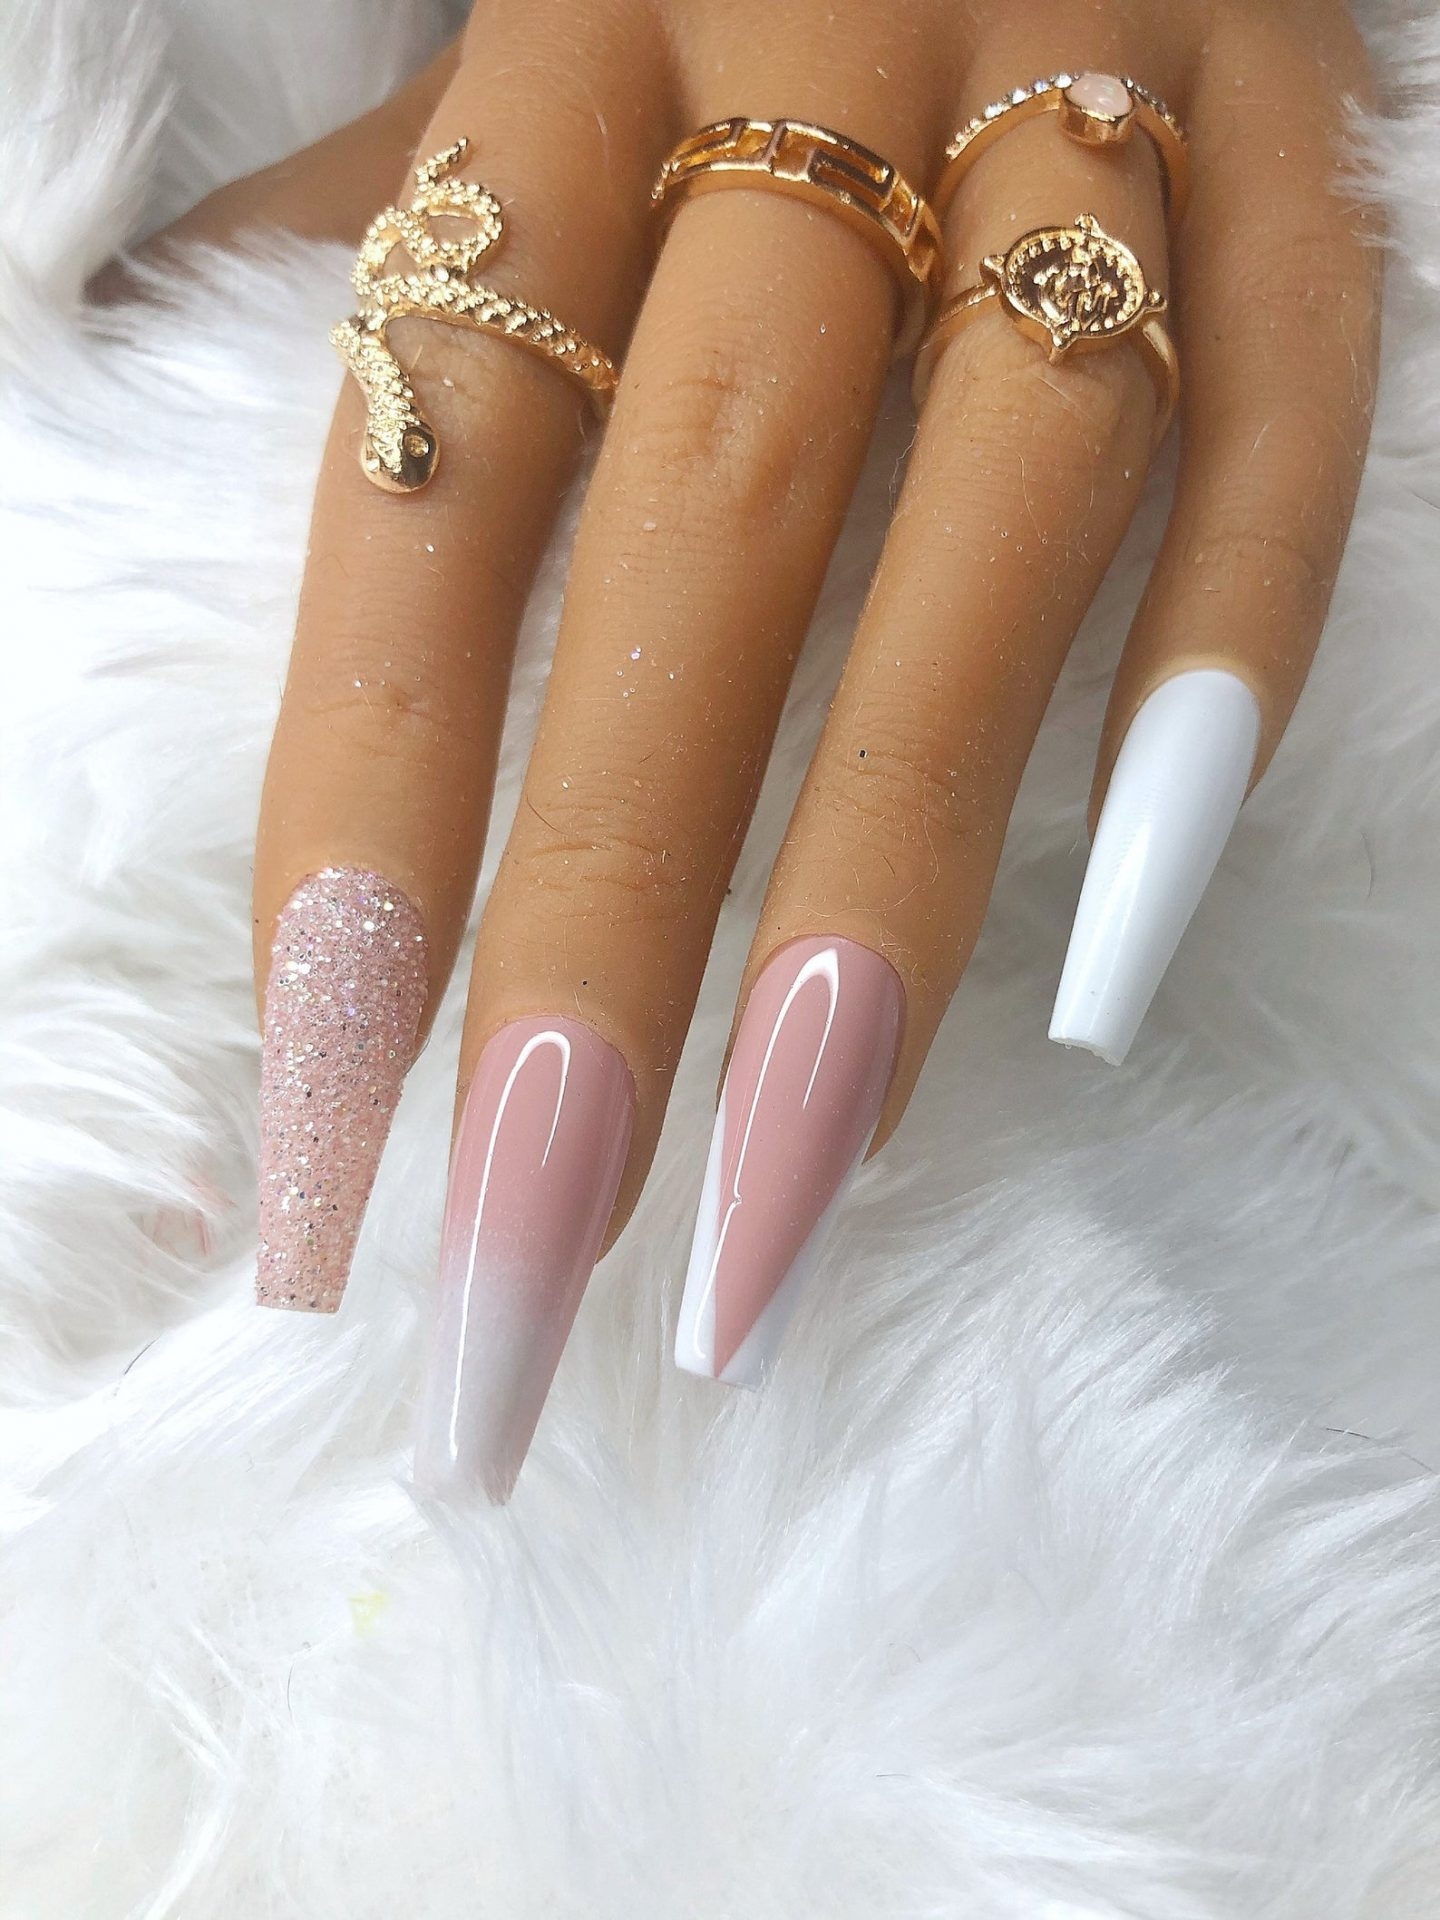 Cute pink and white French tip nails with glitter